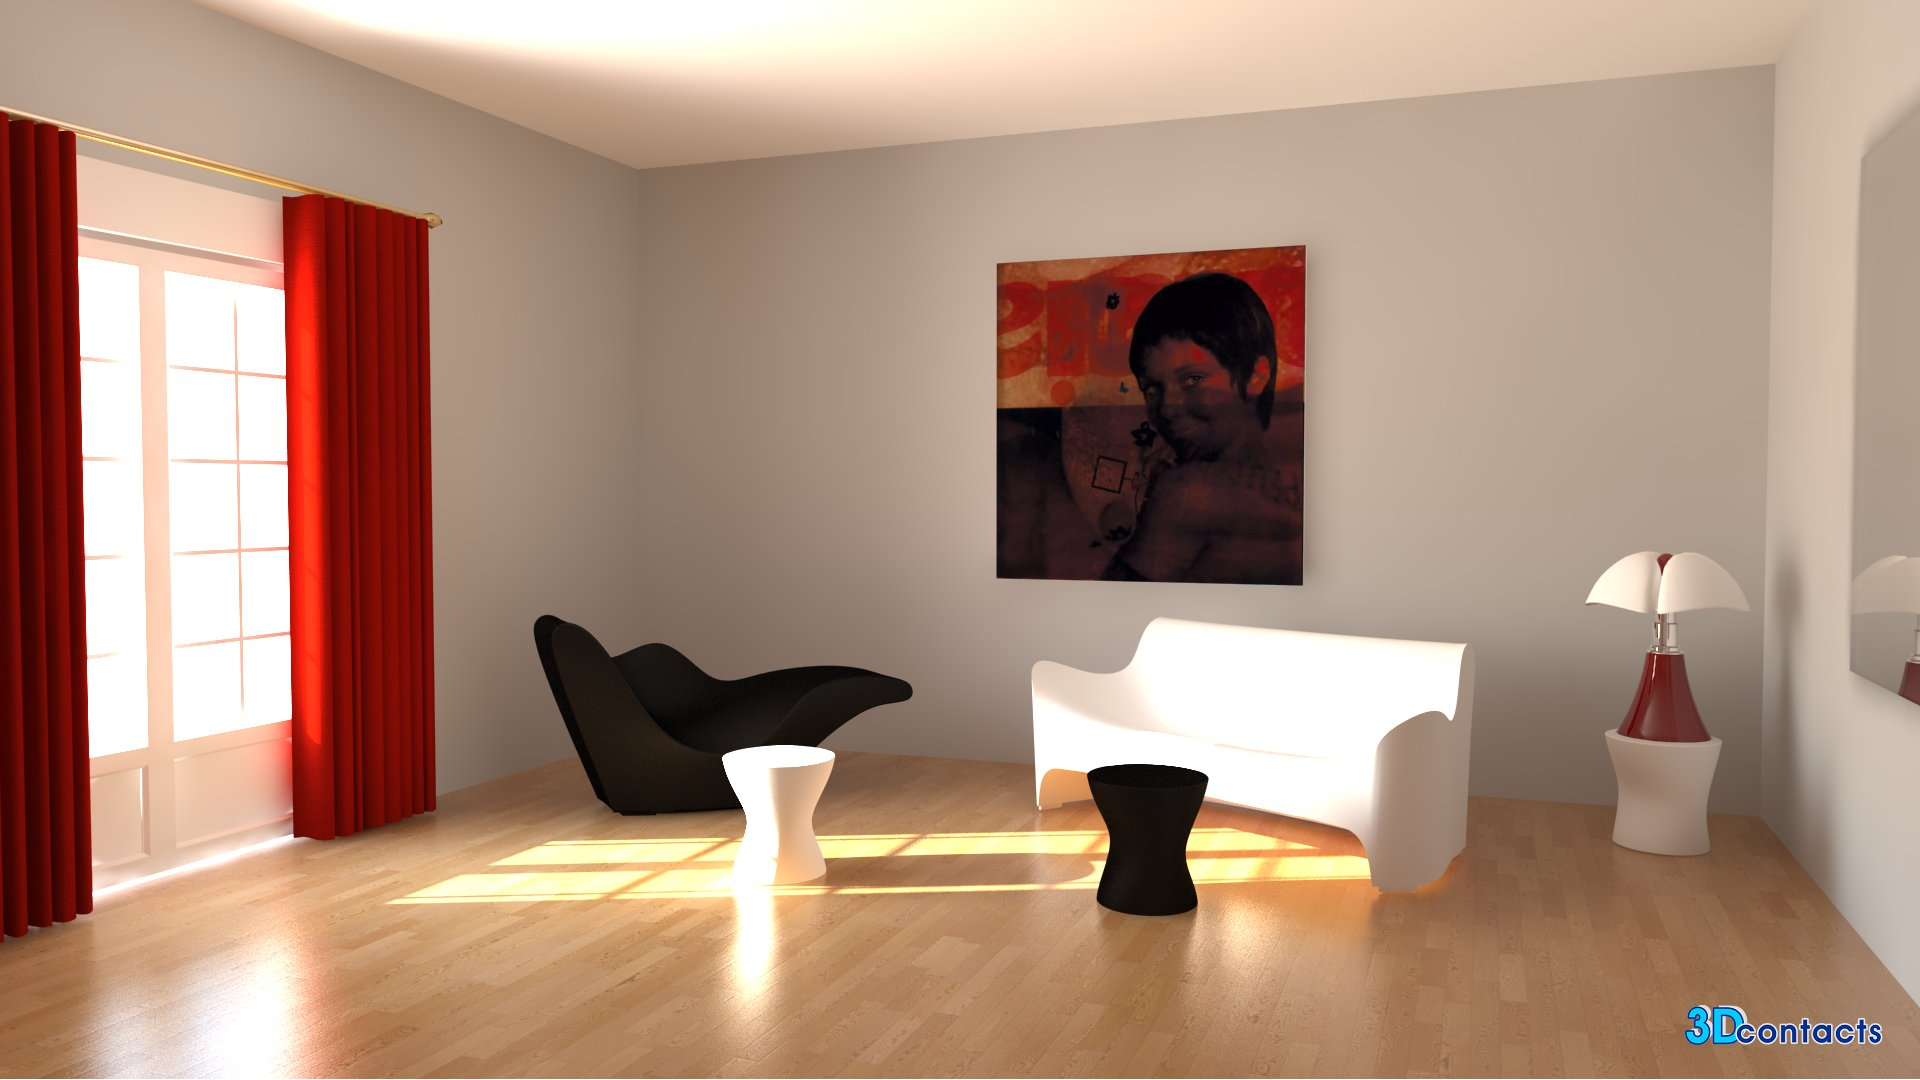 3d contacts salon design meubles de tokujin yoshioka lampe pipistrello. Black Bedroom Furniture Sets. Home Design Ideas